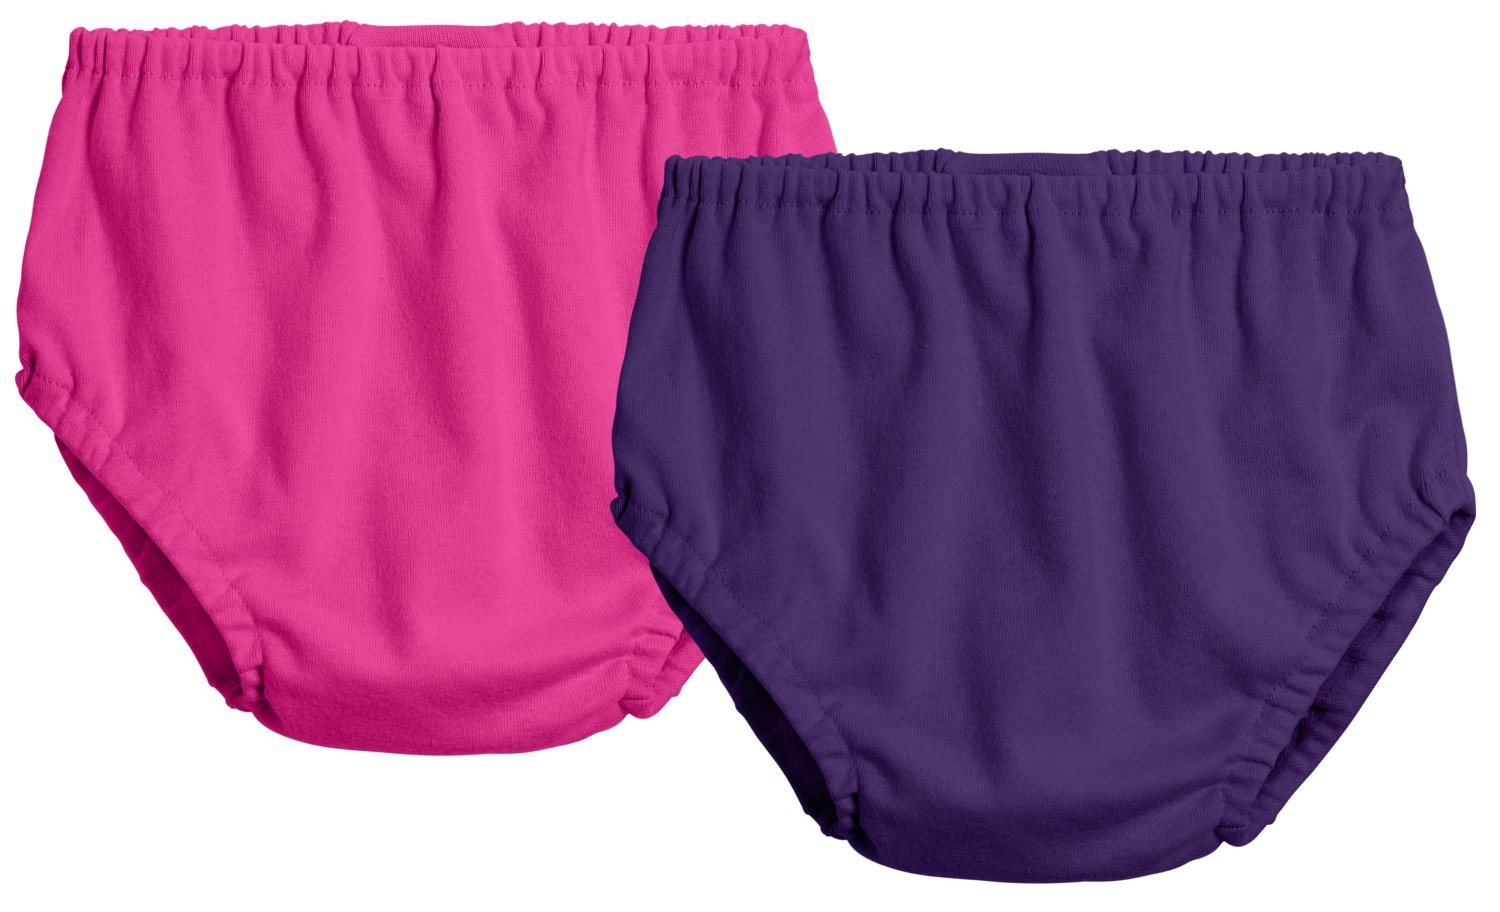 City Threads 2-Pack Baby Girls' and Baby Boys' Unisex Diaper Covers Bloomers Soft Cotton, Hot Pink/Purple, 6/9 m